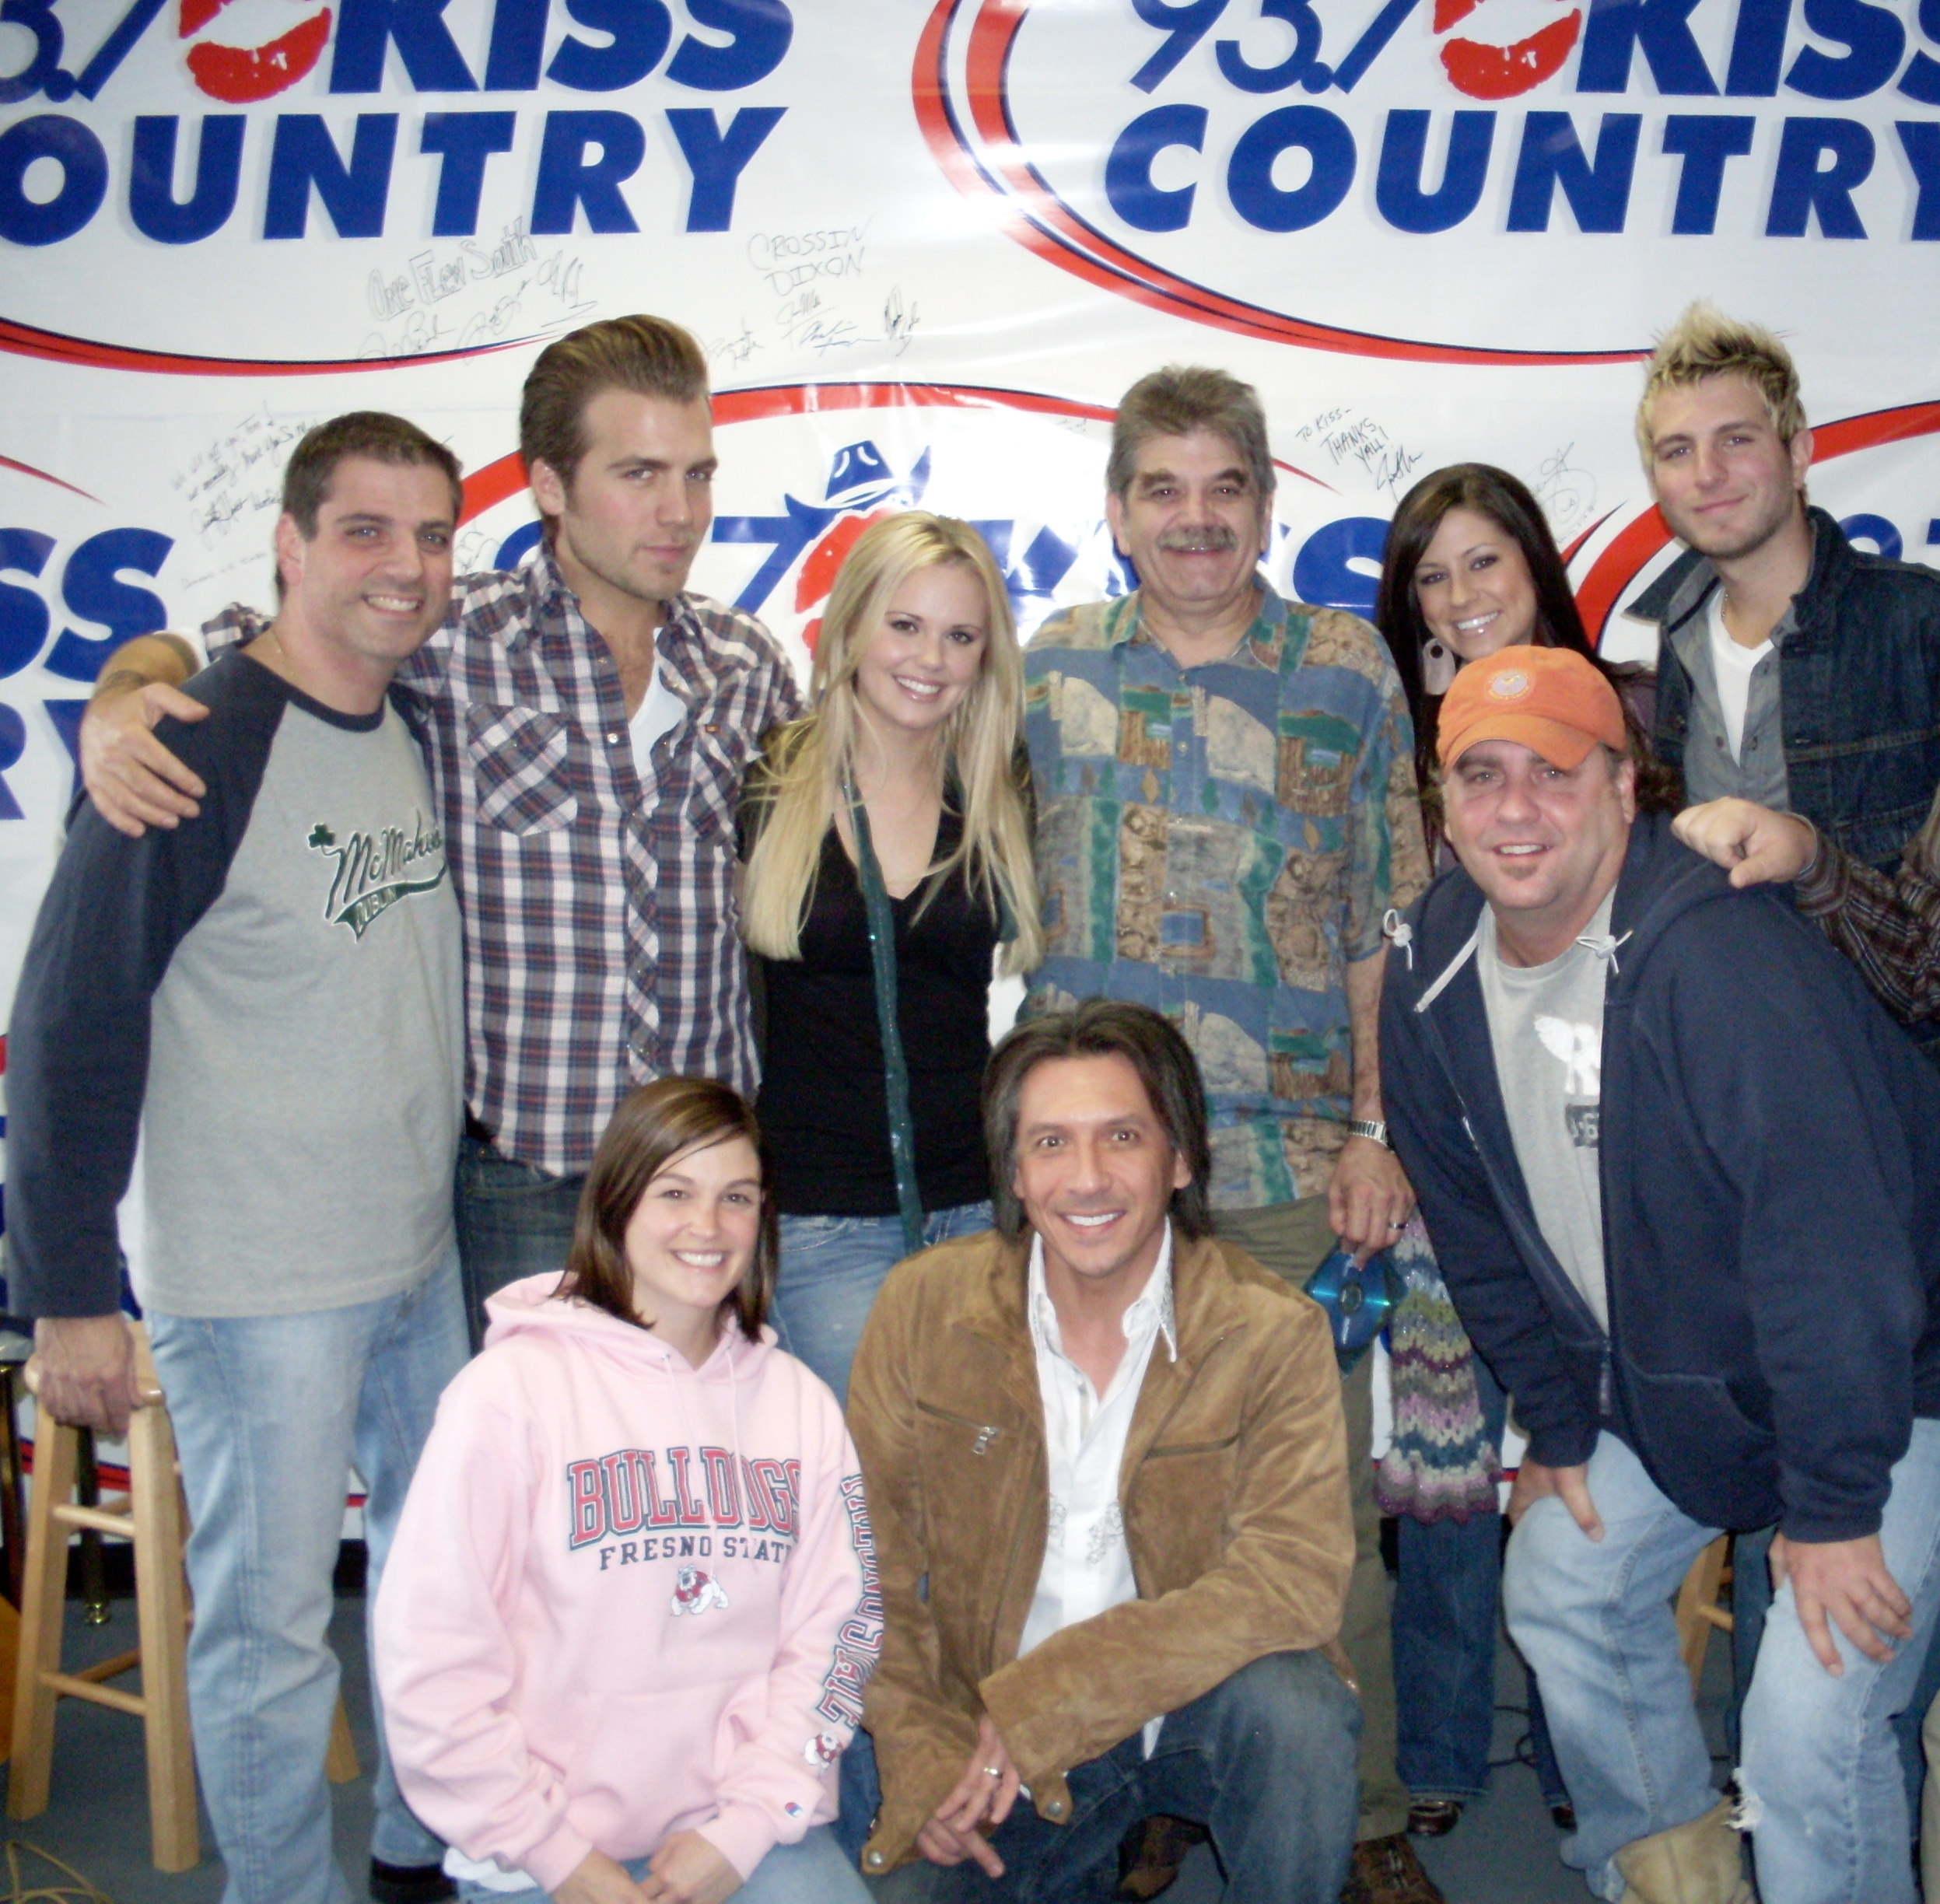 Gloriana with the KISS COUNTRY CREW, Garabo, Tom, Erica Gnarley Charley, plus Rob Dalton!!